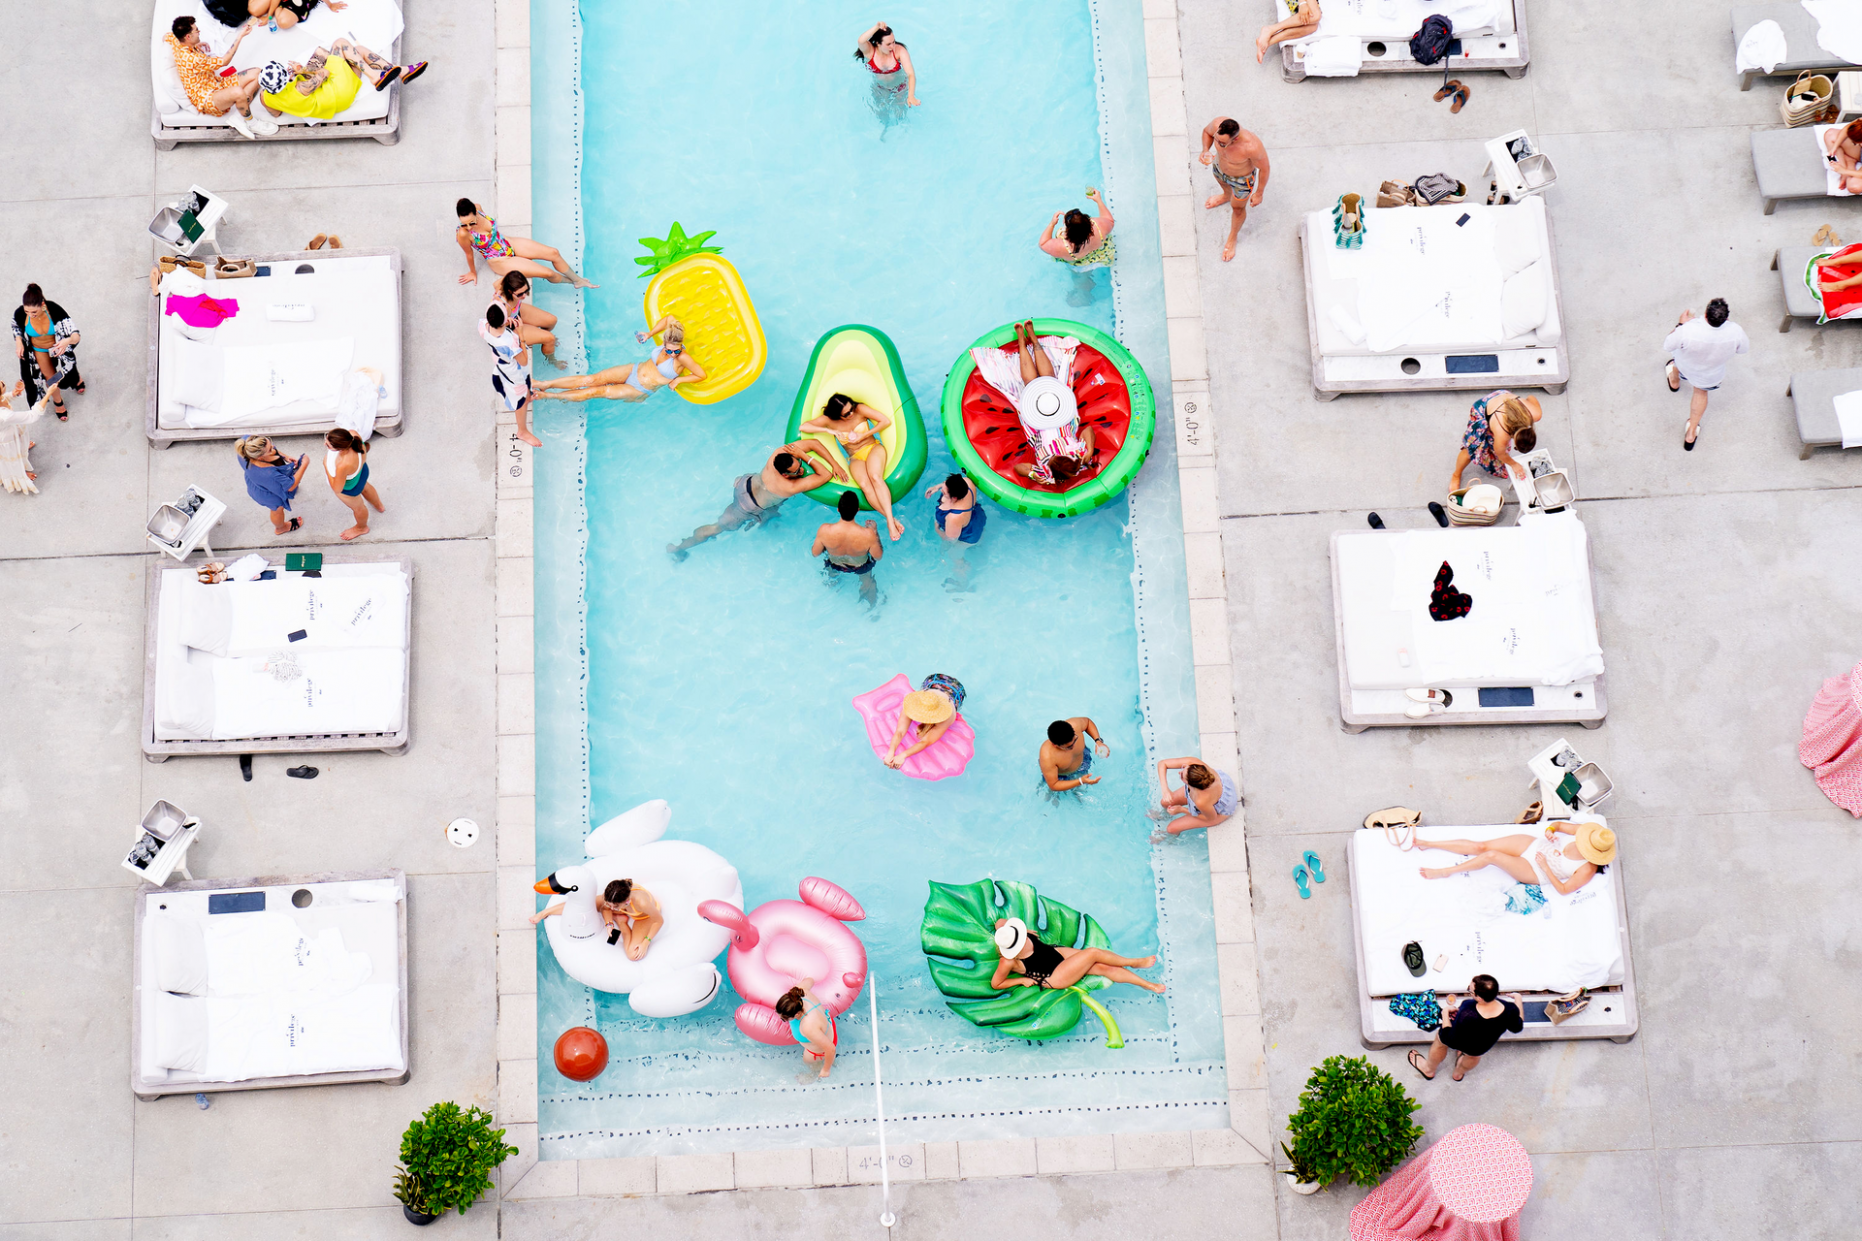 Summer Pool Party Ideas for Corporate Groups | BizBash